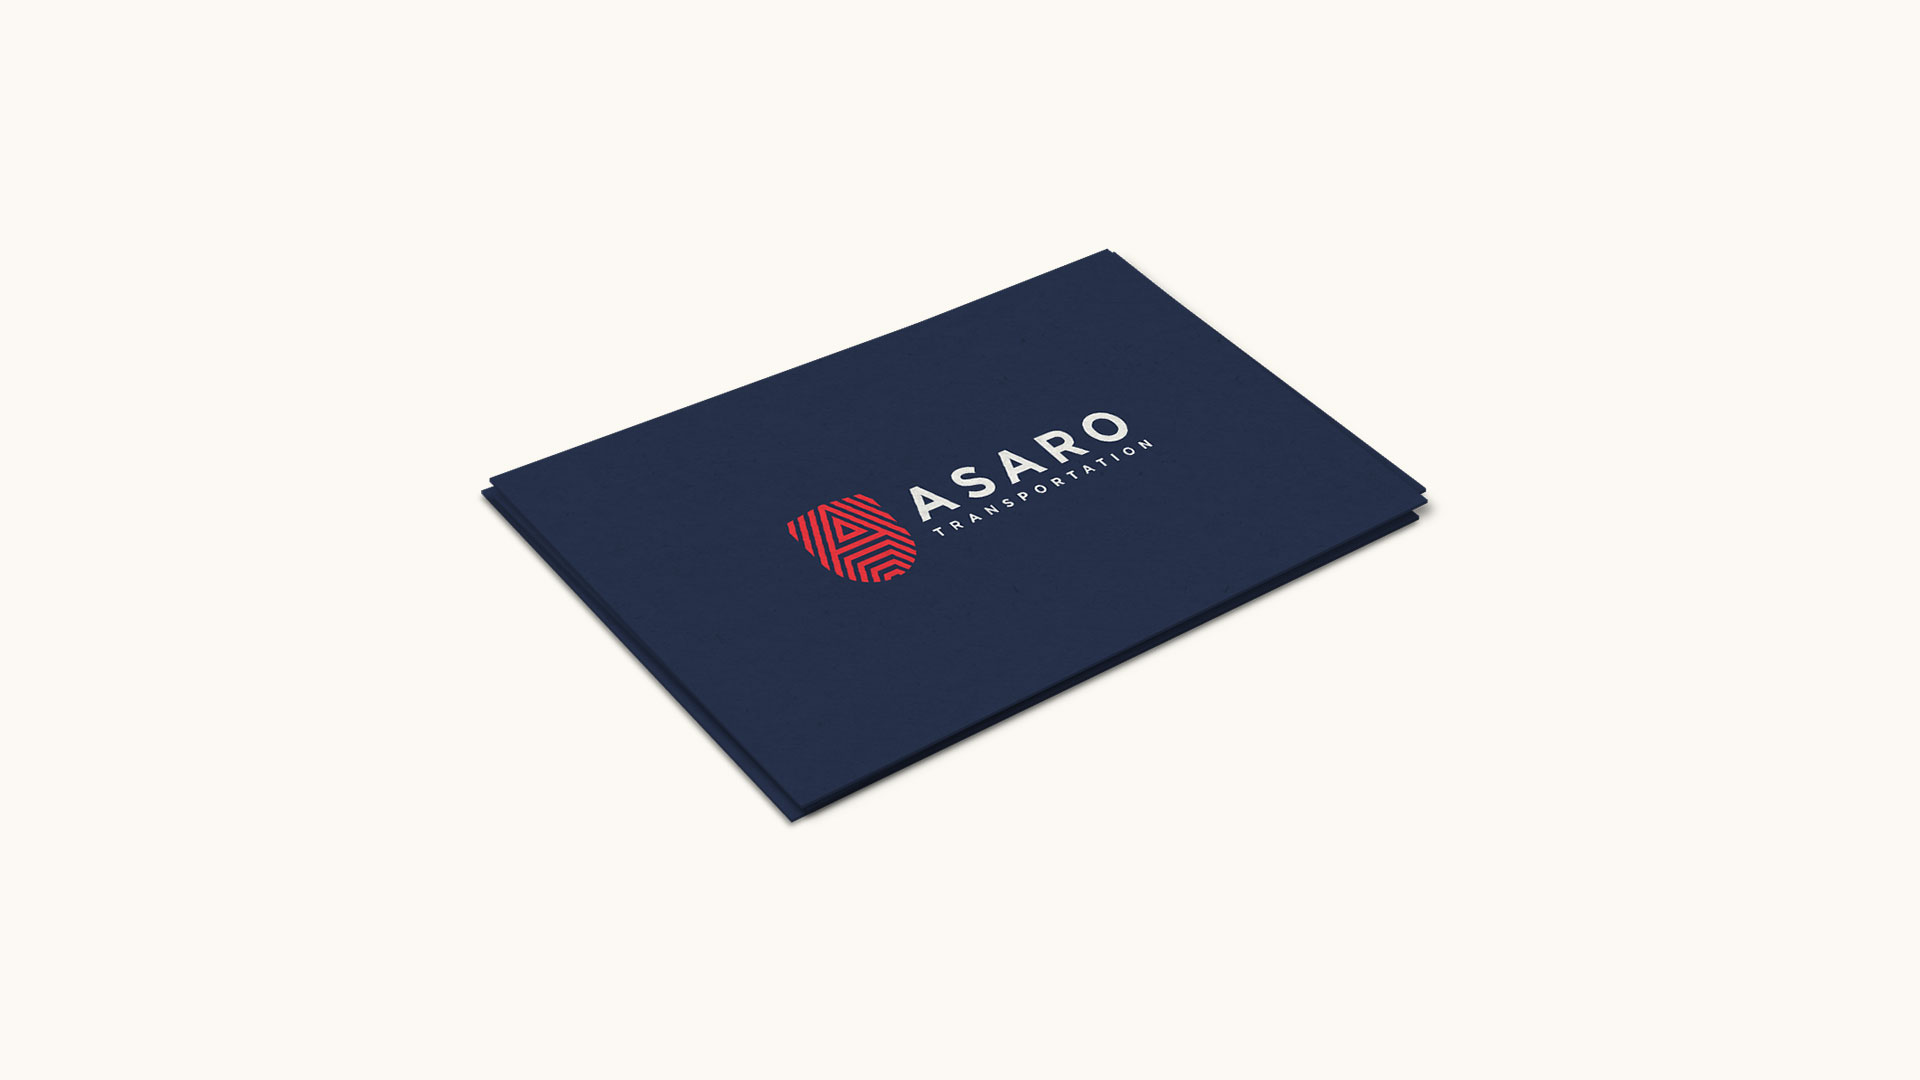 asaro-business-card.jpg